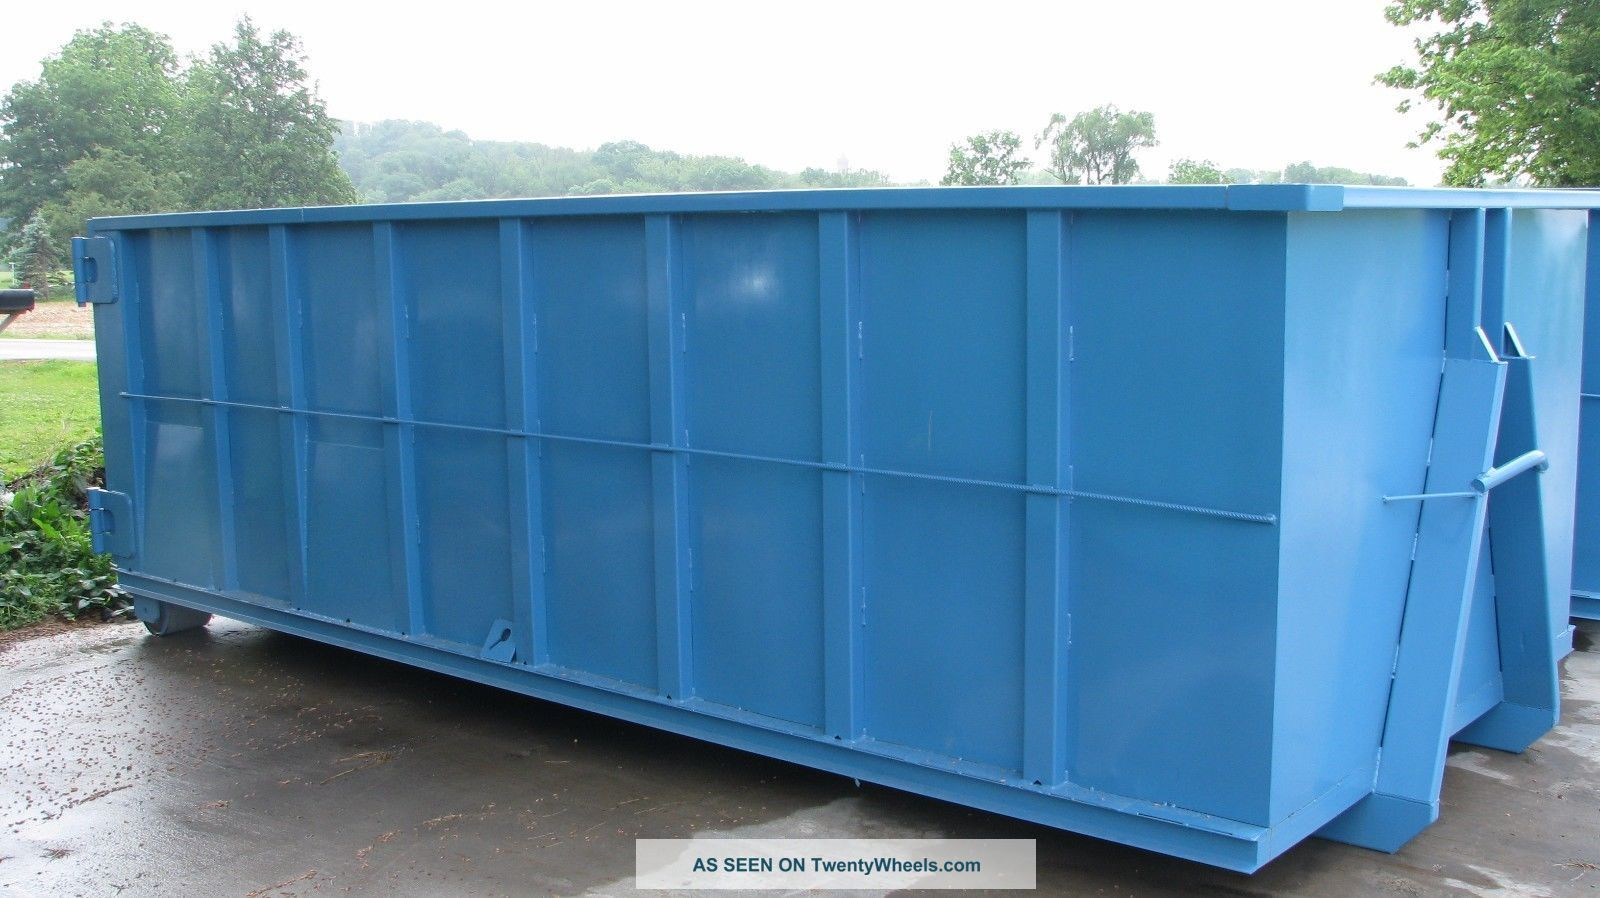 Yard waste dumpsters pictures to pin on pinterest pinsdaddy - Garden waste containers ...